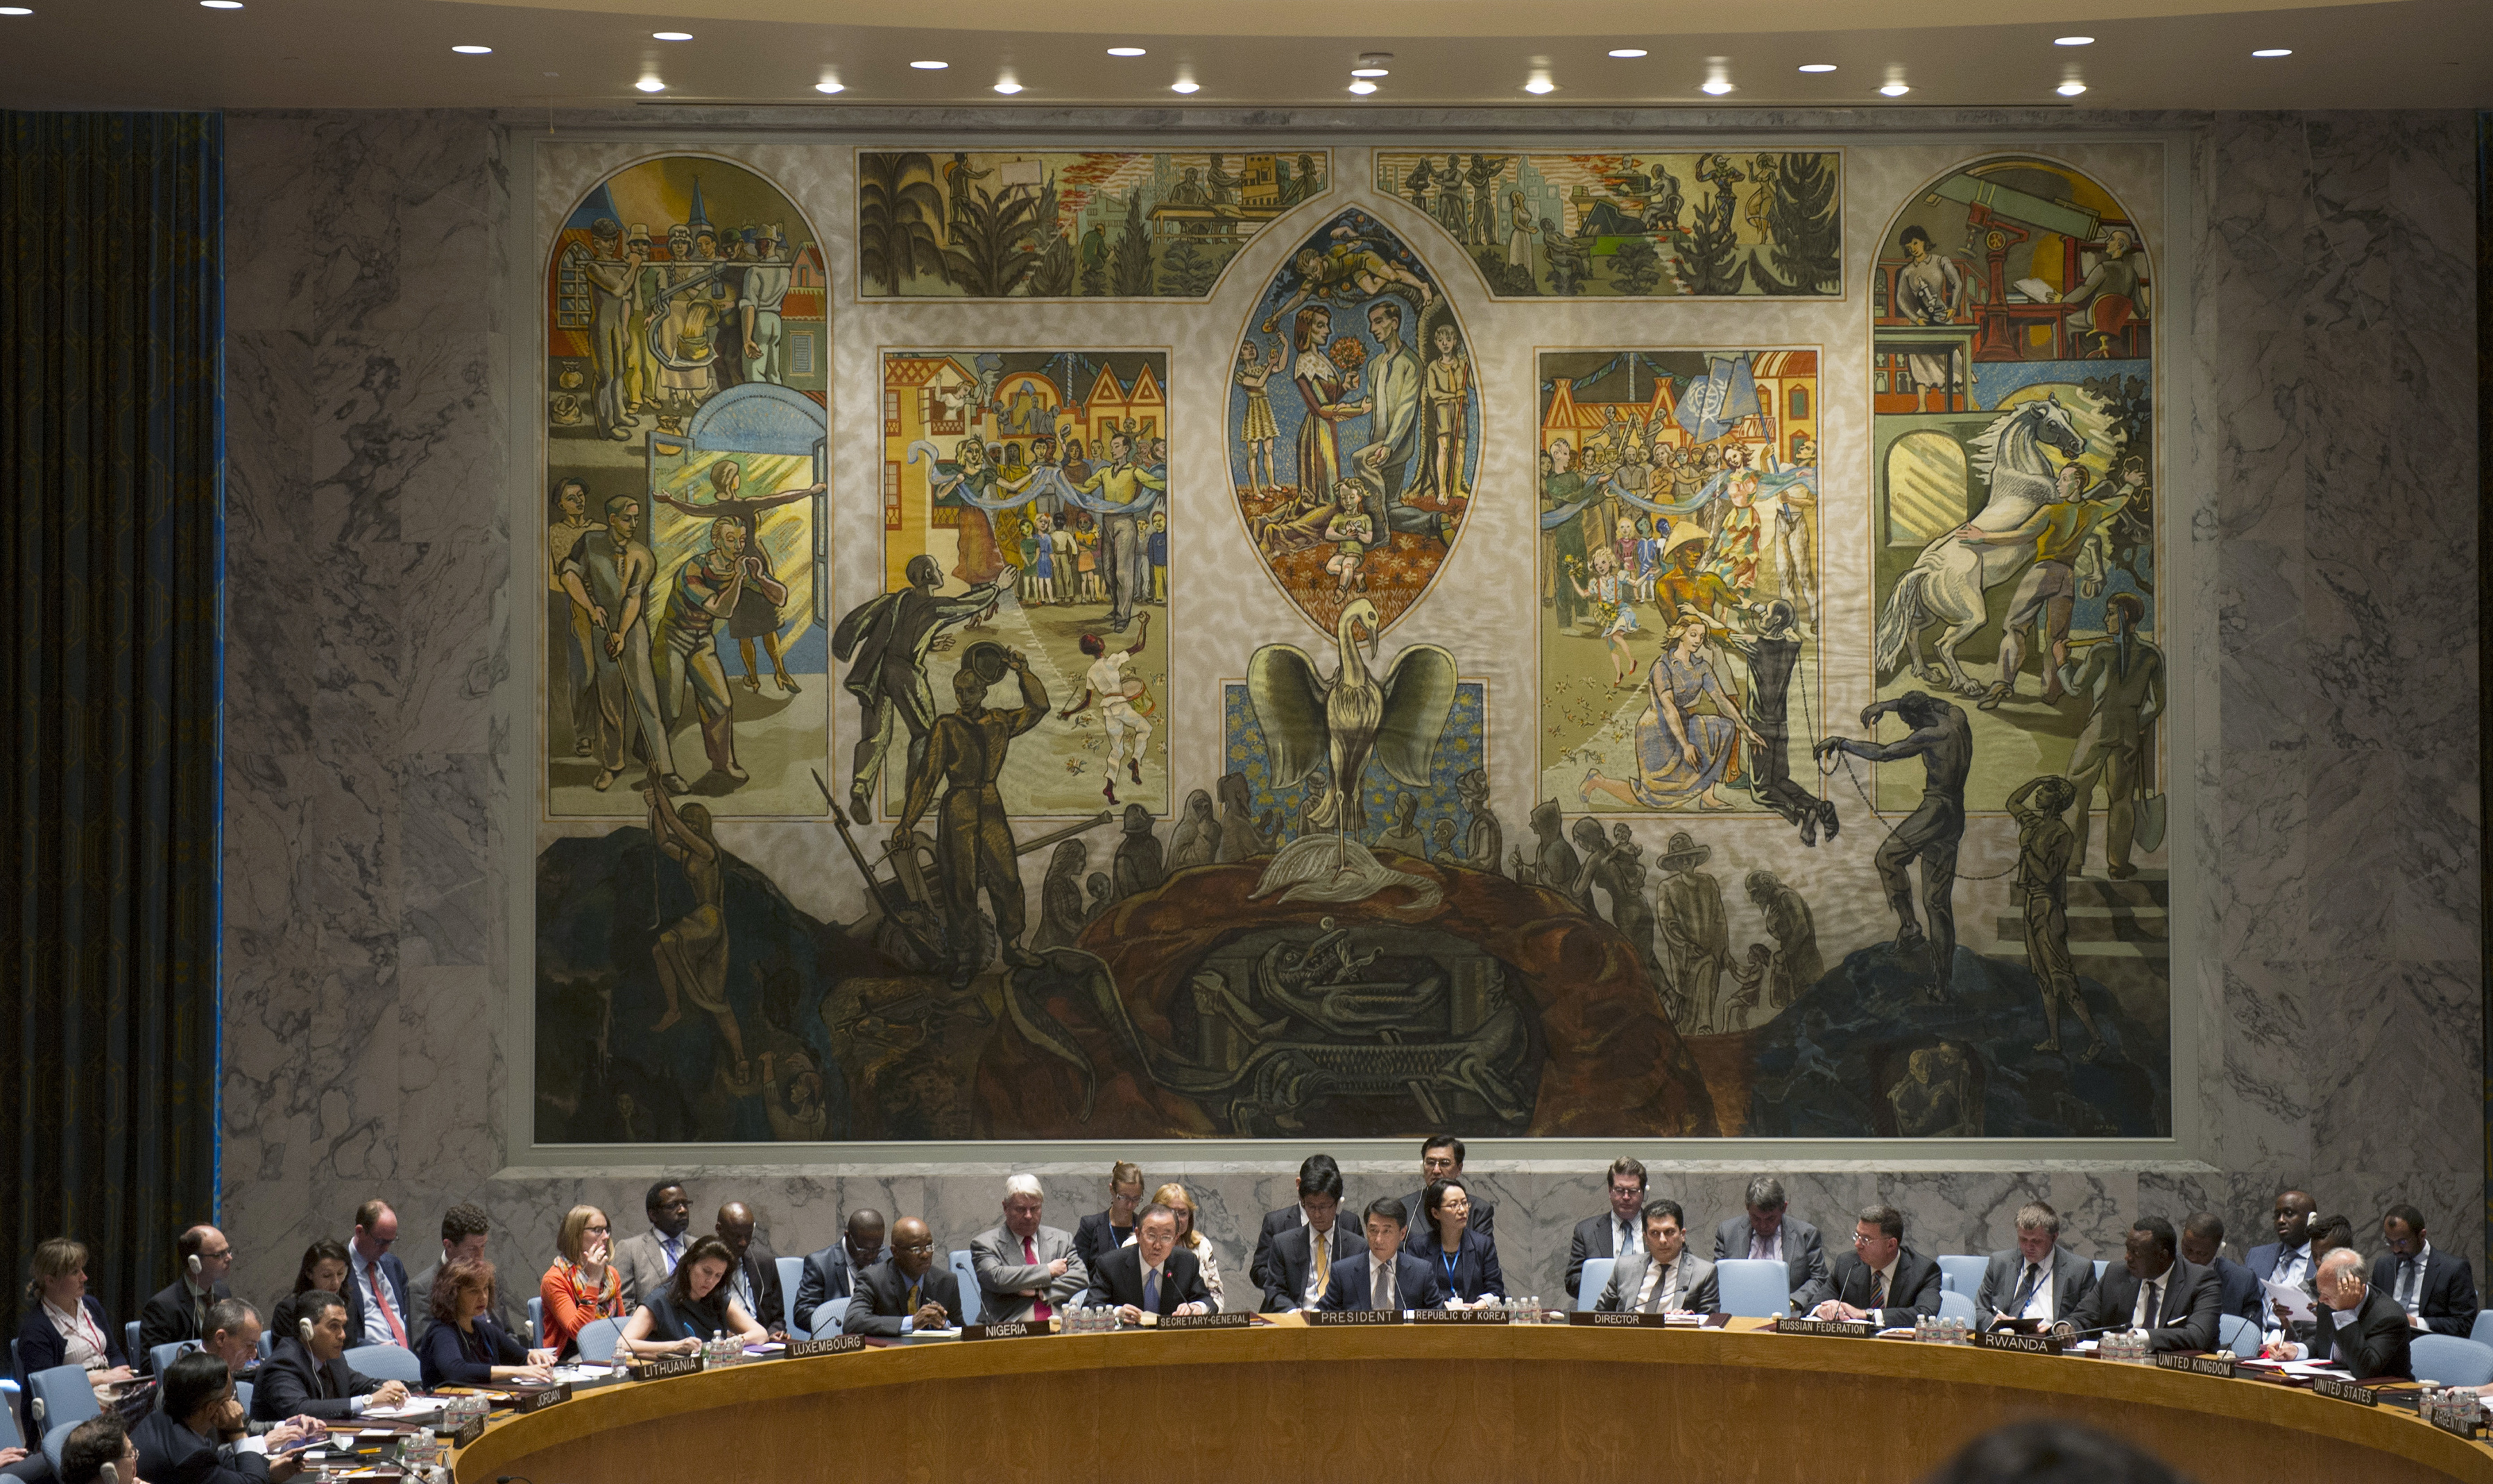 security council reformation essay Proposal to enlarge united nations security council from its present 15  is  chairman of panel that has been studying ways to reform council (m.